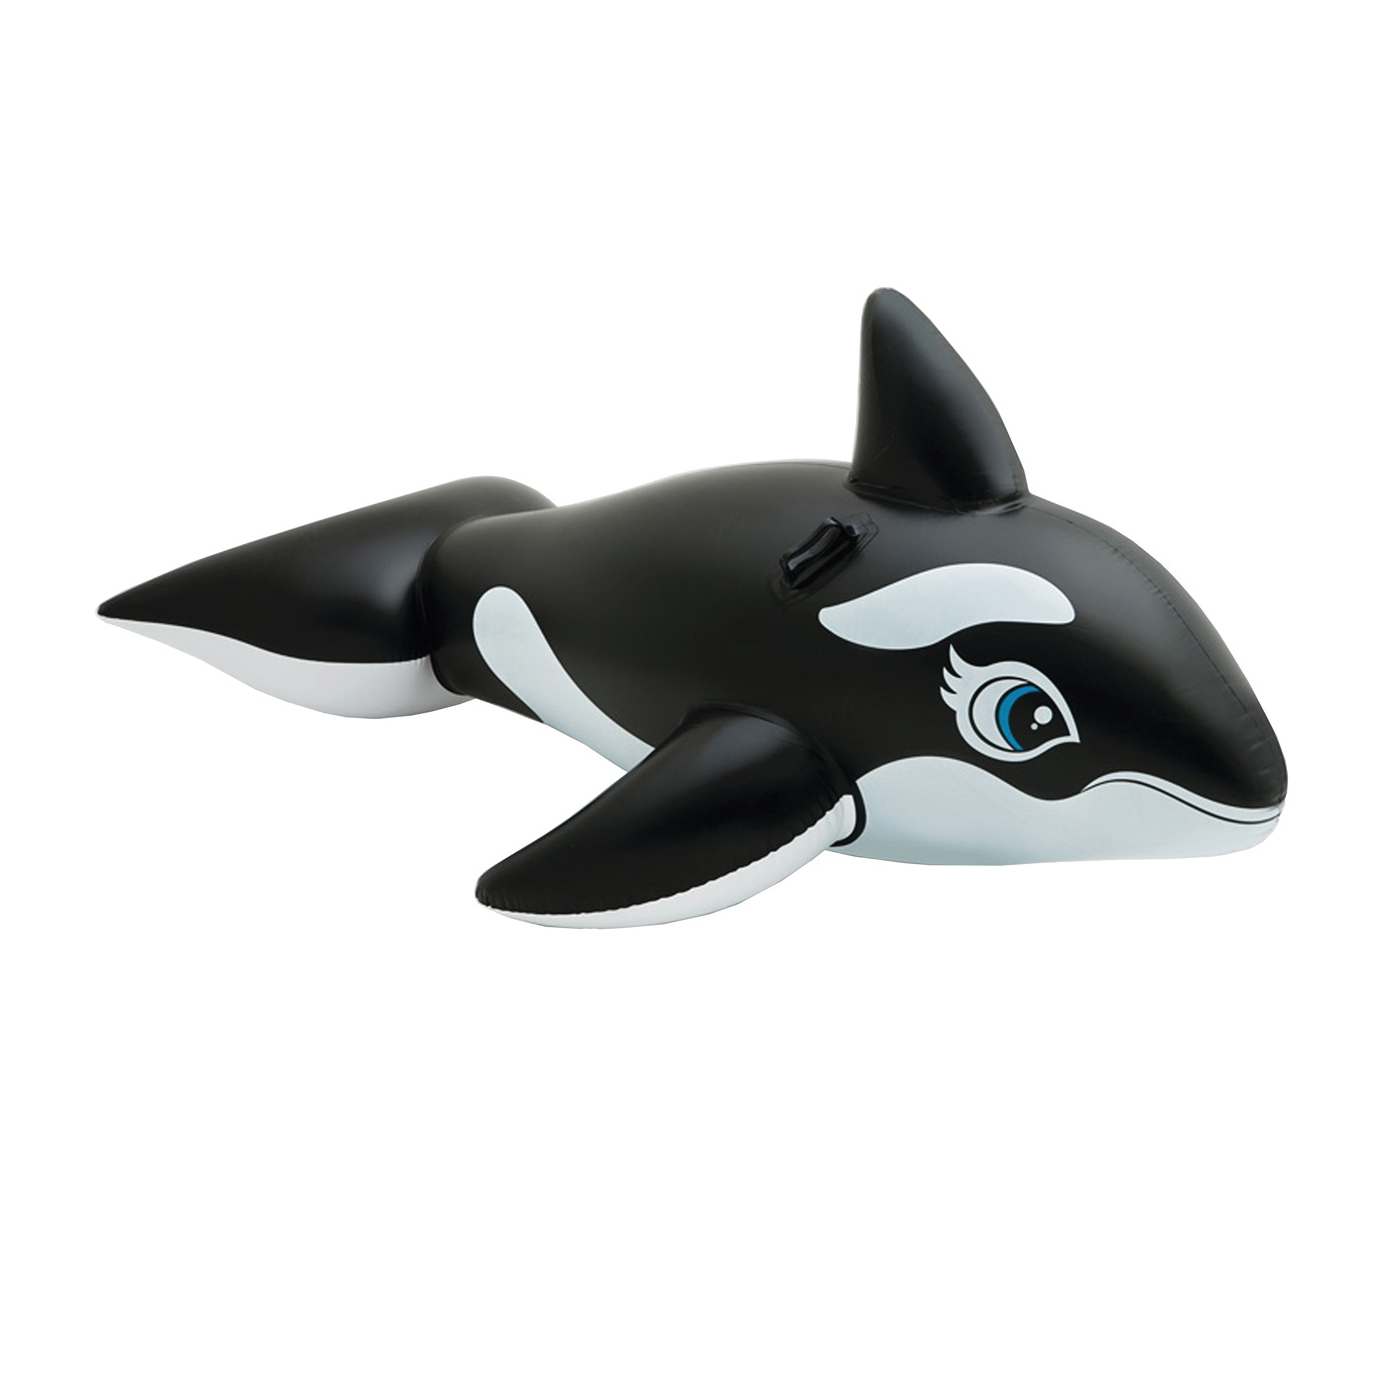 Picture of INTEX 58561EP Whale Ride Pool Toy